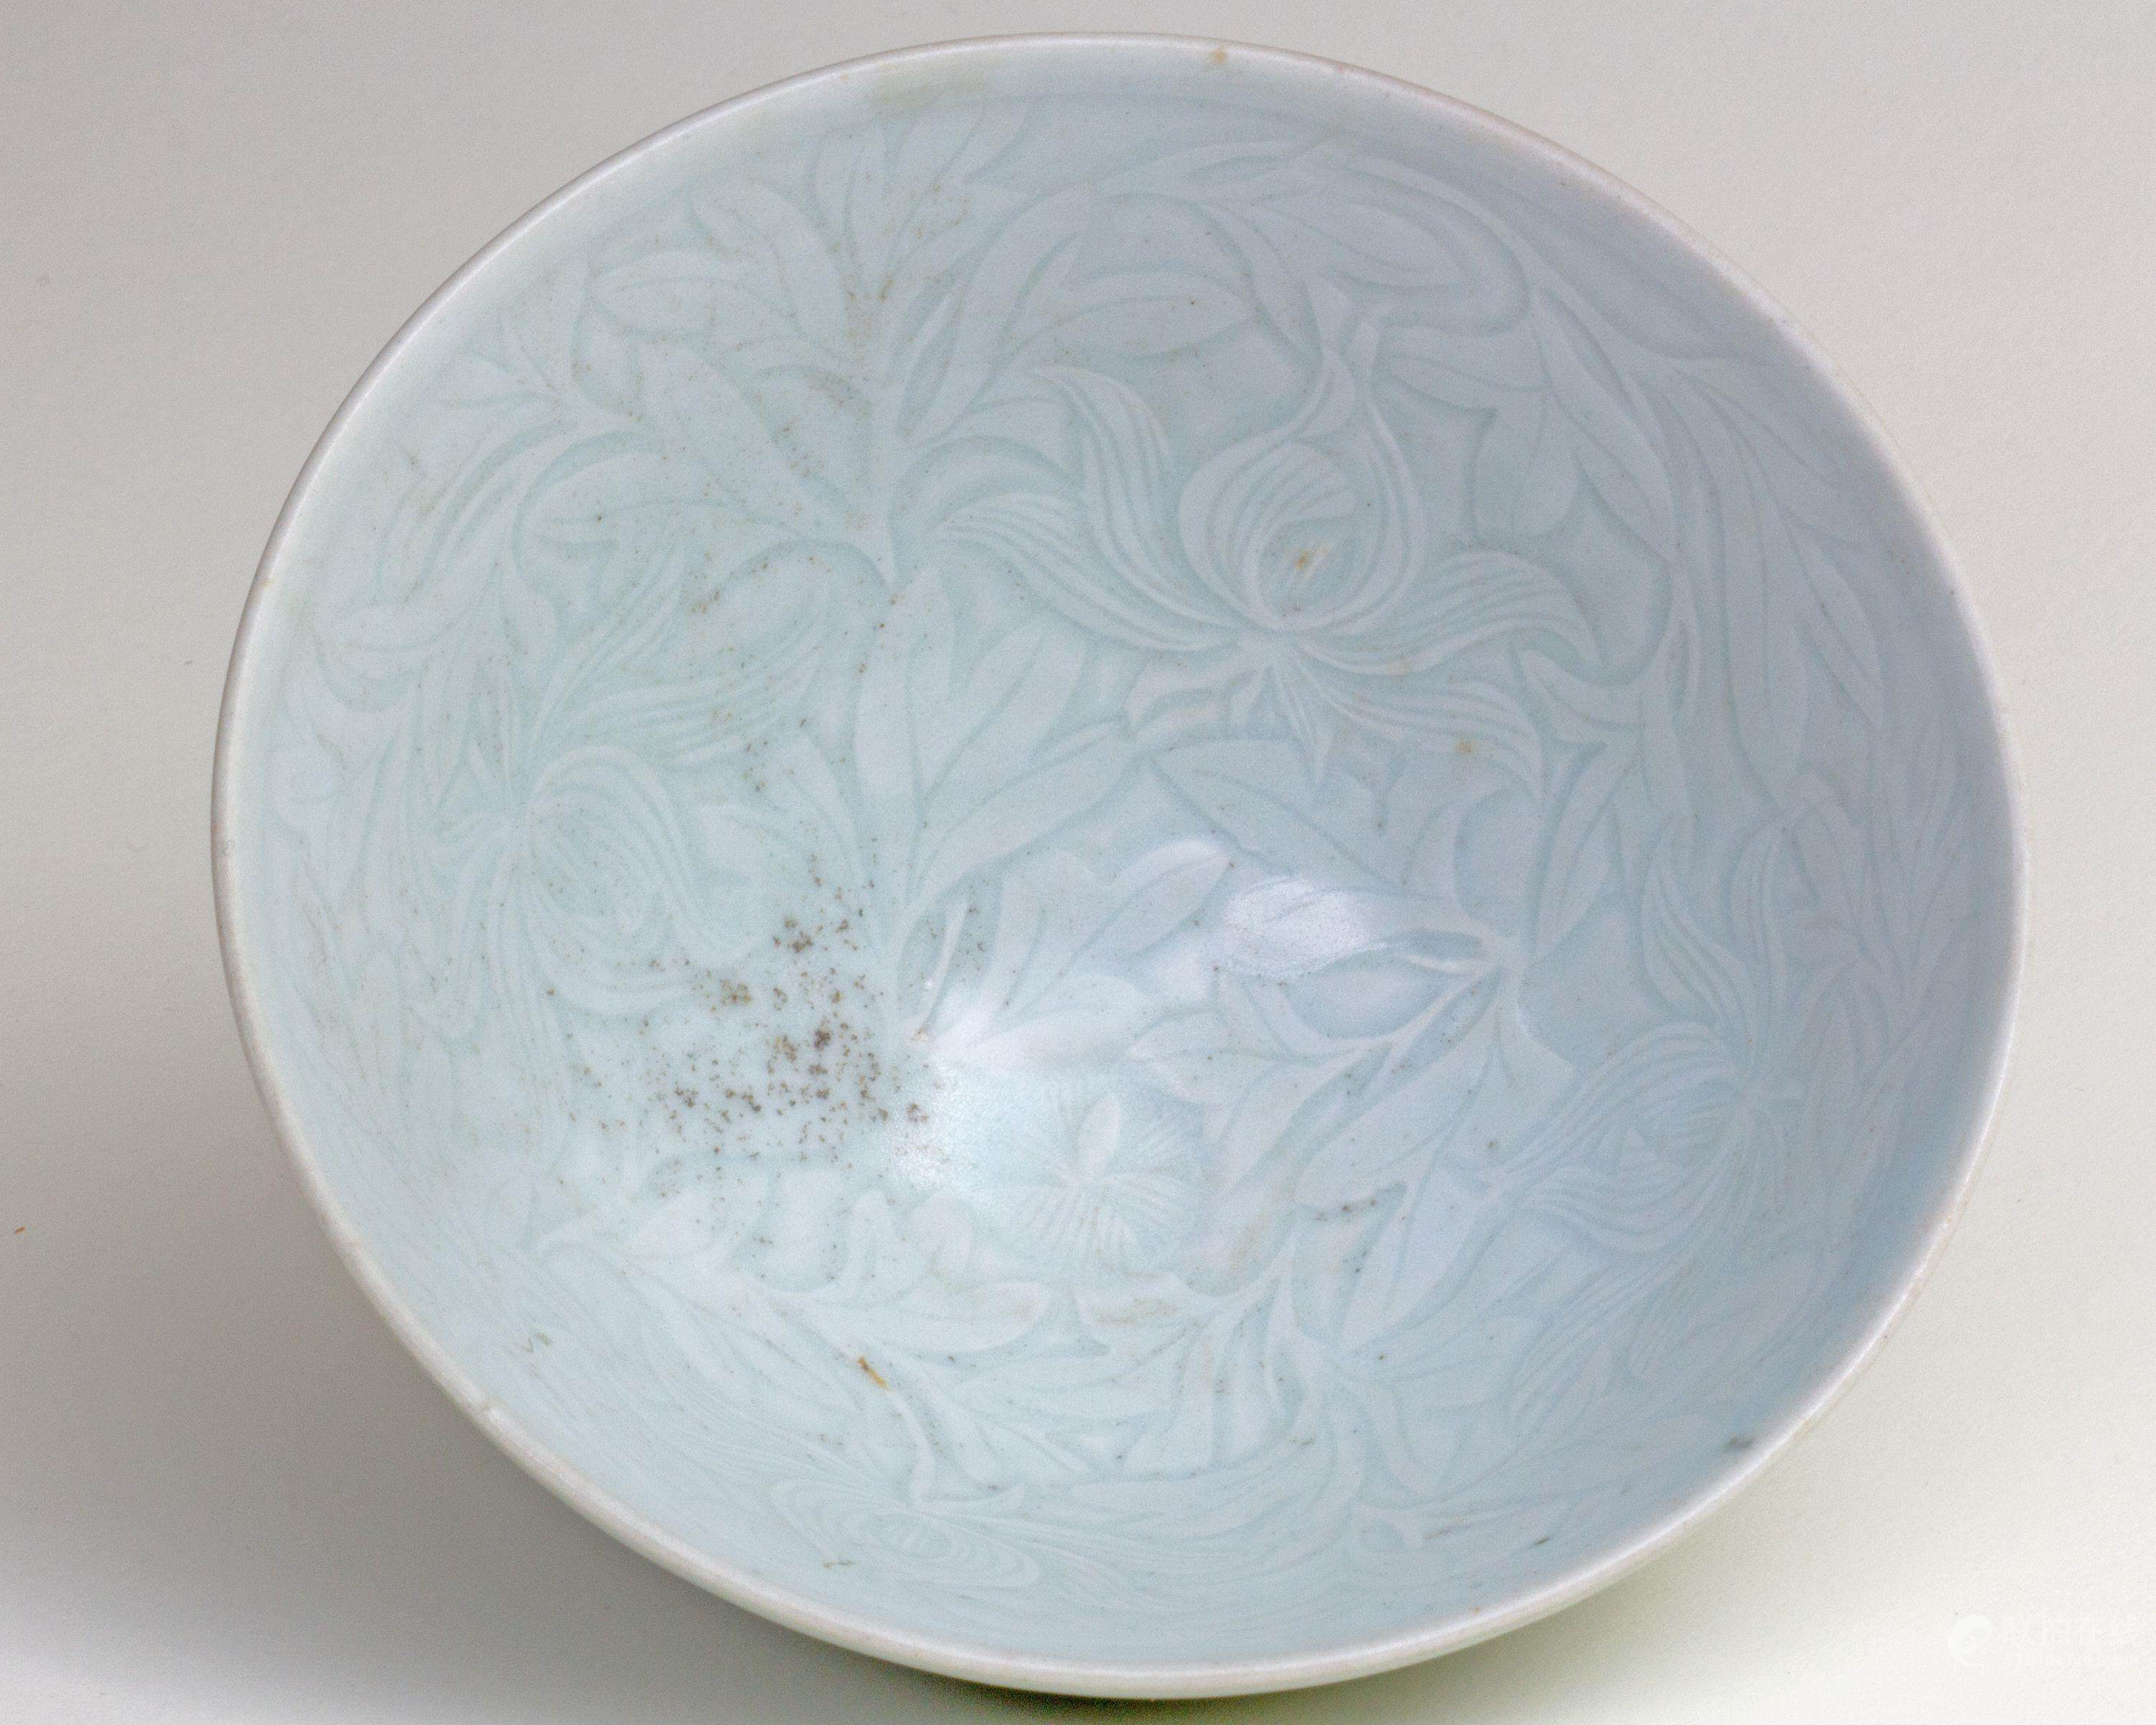 Qing Bai 51bidlive Qing Bai Glazed Bowl With Flower Pattern Engraved